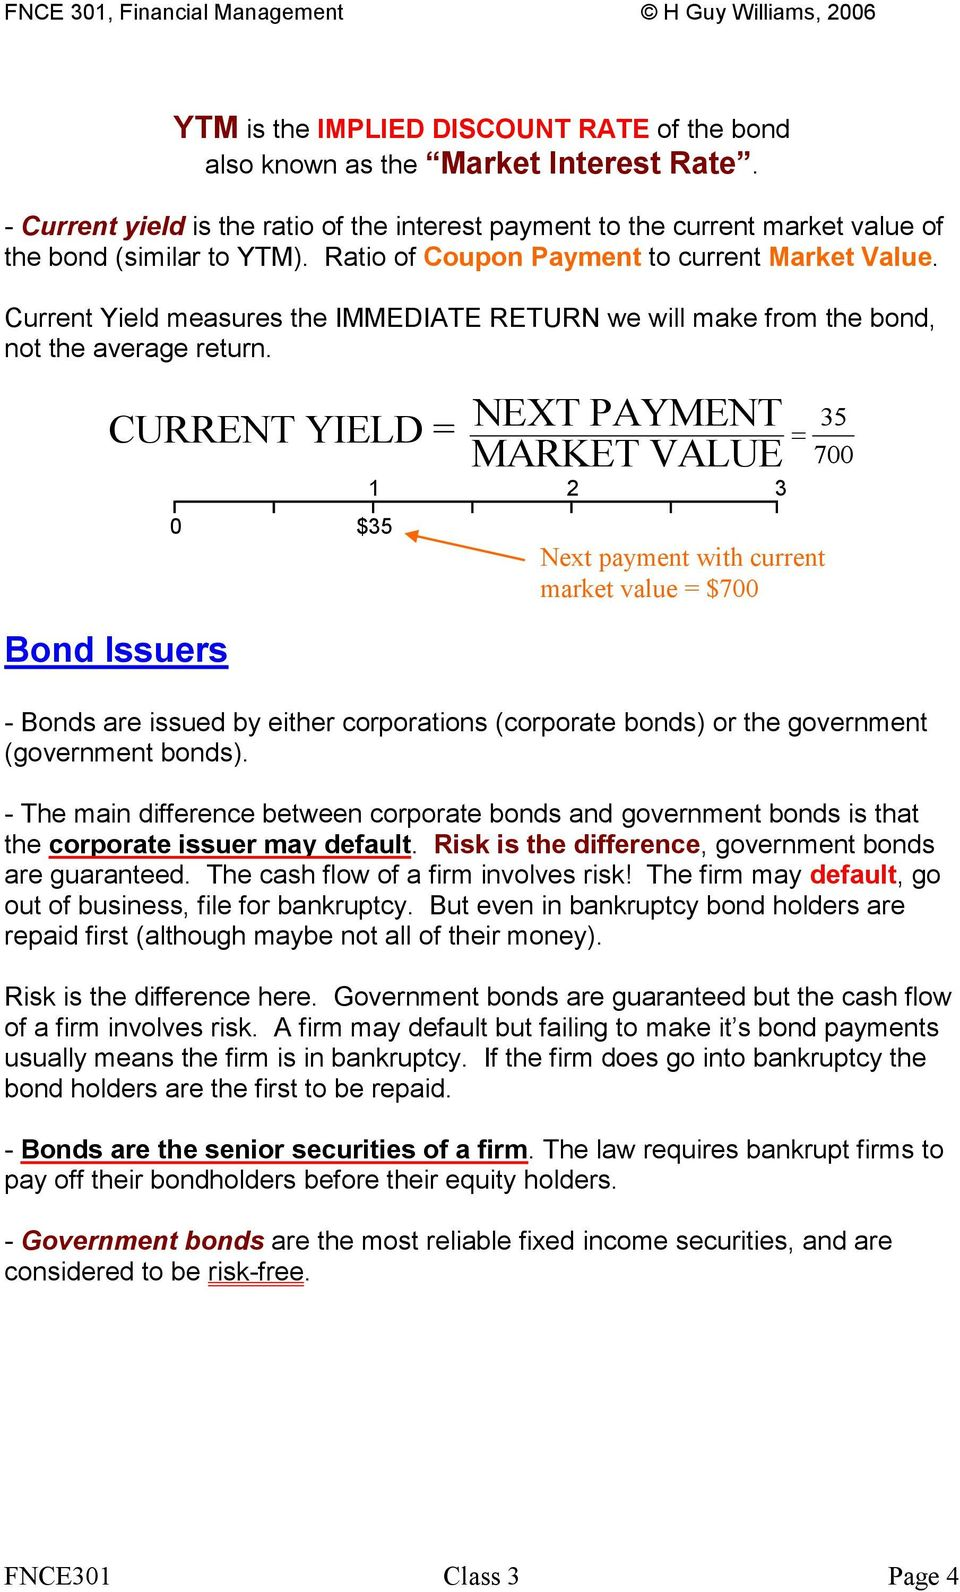 NEXT PAYMENT CURRENT YIELD = MARKET VALUE Bond Issuers 0 $35 1 2 3 Next payment with current market value = $700 35 700 - Bonds are issued by either corporations (corporate bonds) or the government